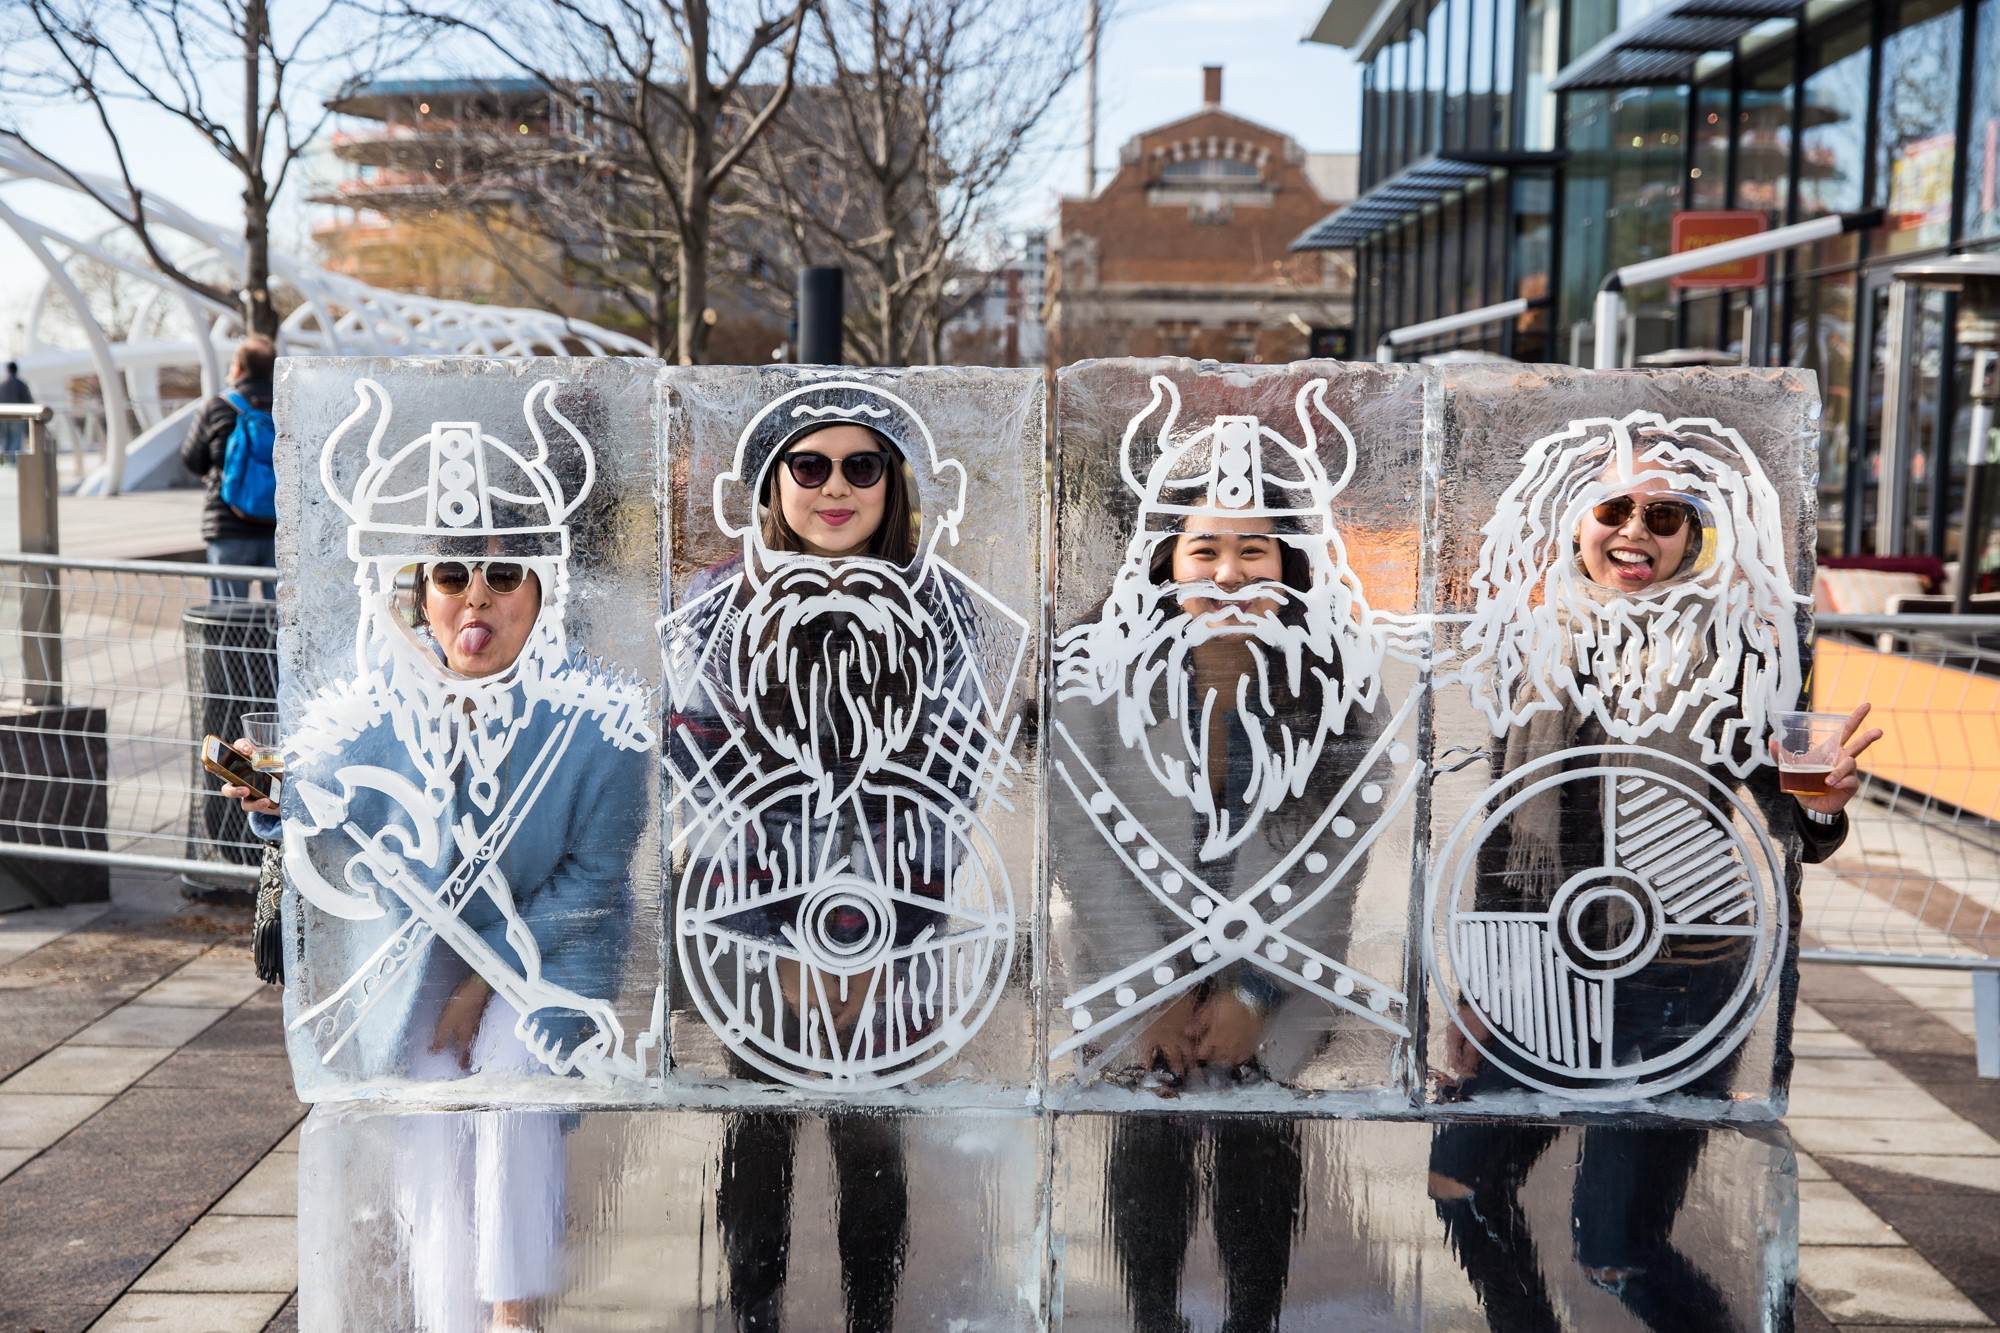 Now in its fifth year, Ice Yards has become the event of the winter season, with thousands enjoying an unparalleled afternoon in D.C.'s only adult-friendly winter wonderland. (Image: Courtesy Ice Yards)